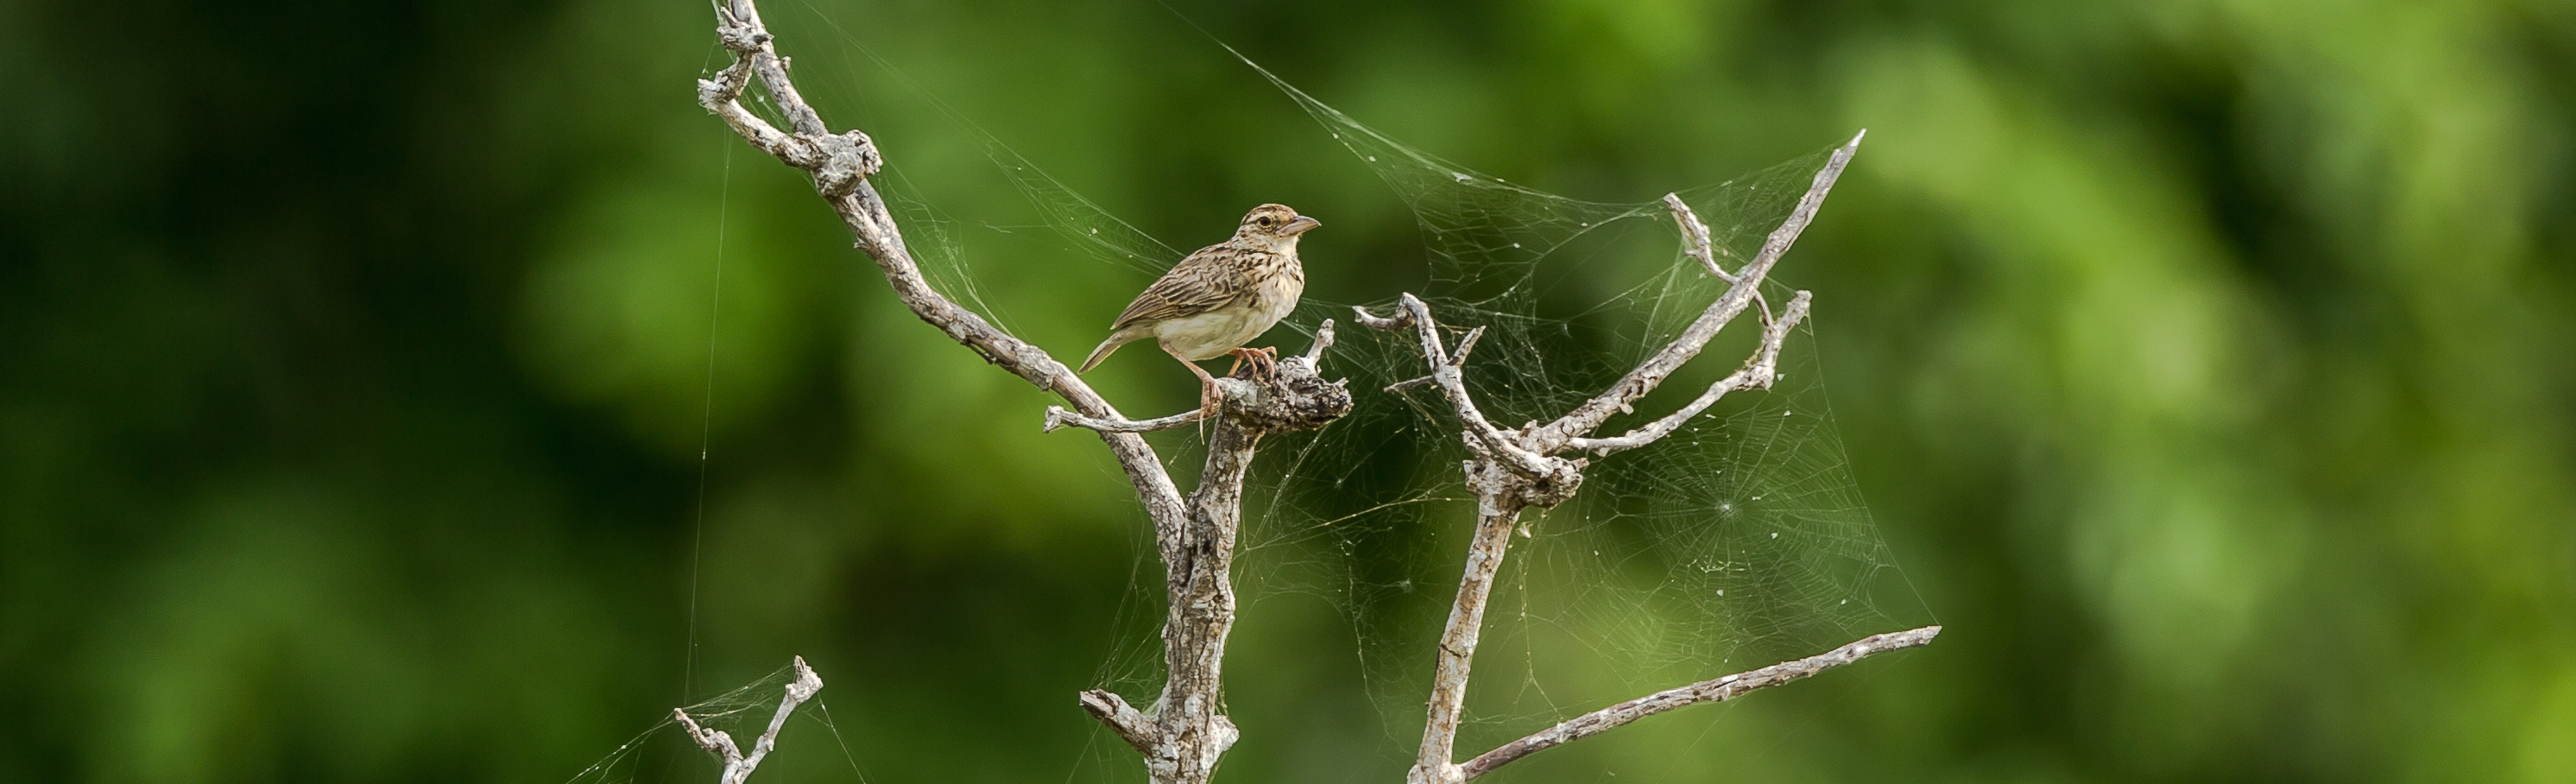 Bird among cobwebs